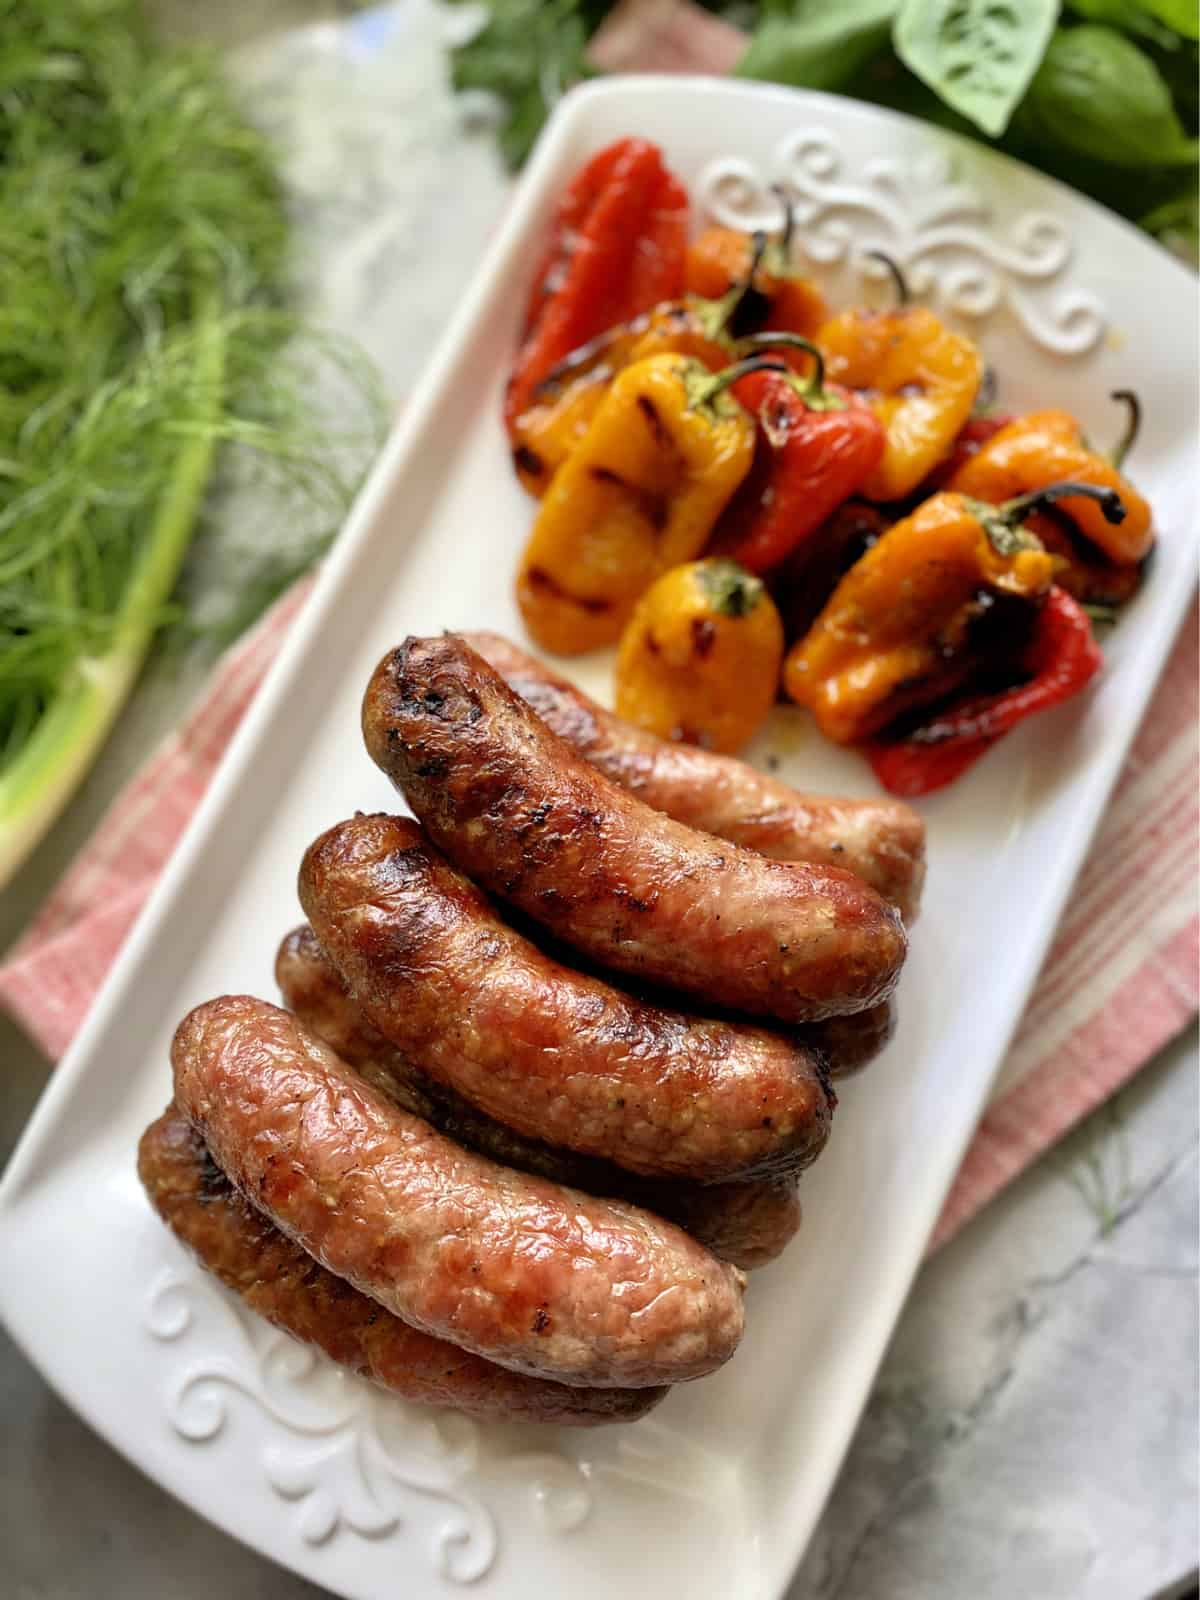 Top view of grilled Italian sausage with charred mini peppers on a white plate with fresh herbs.